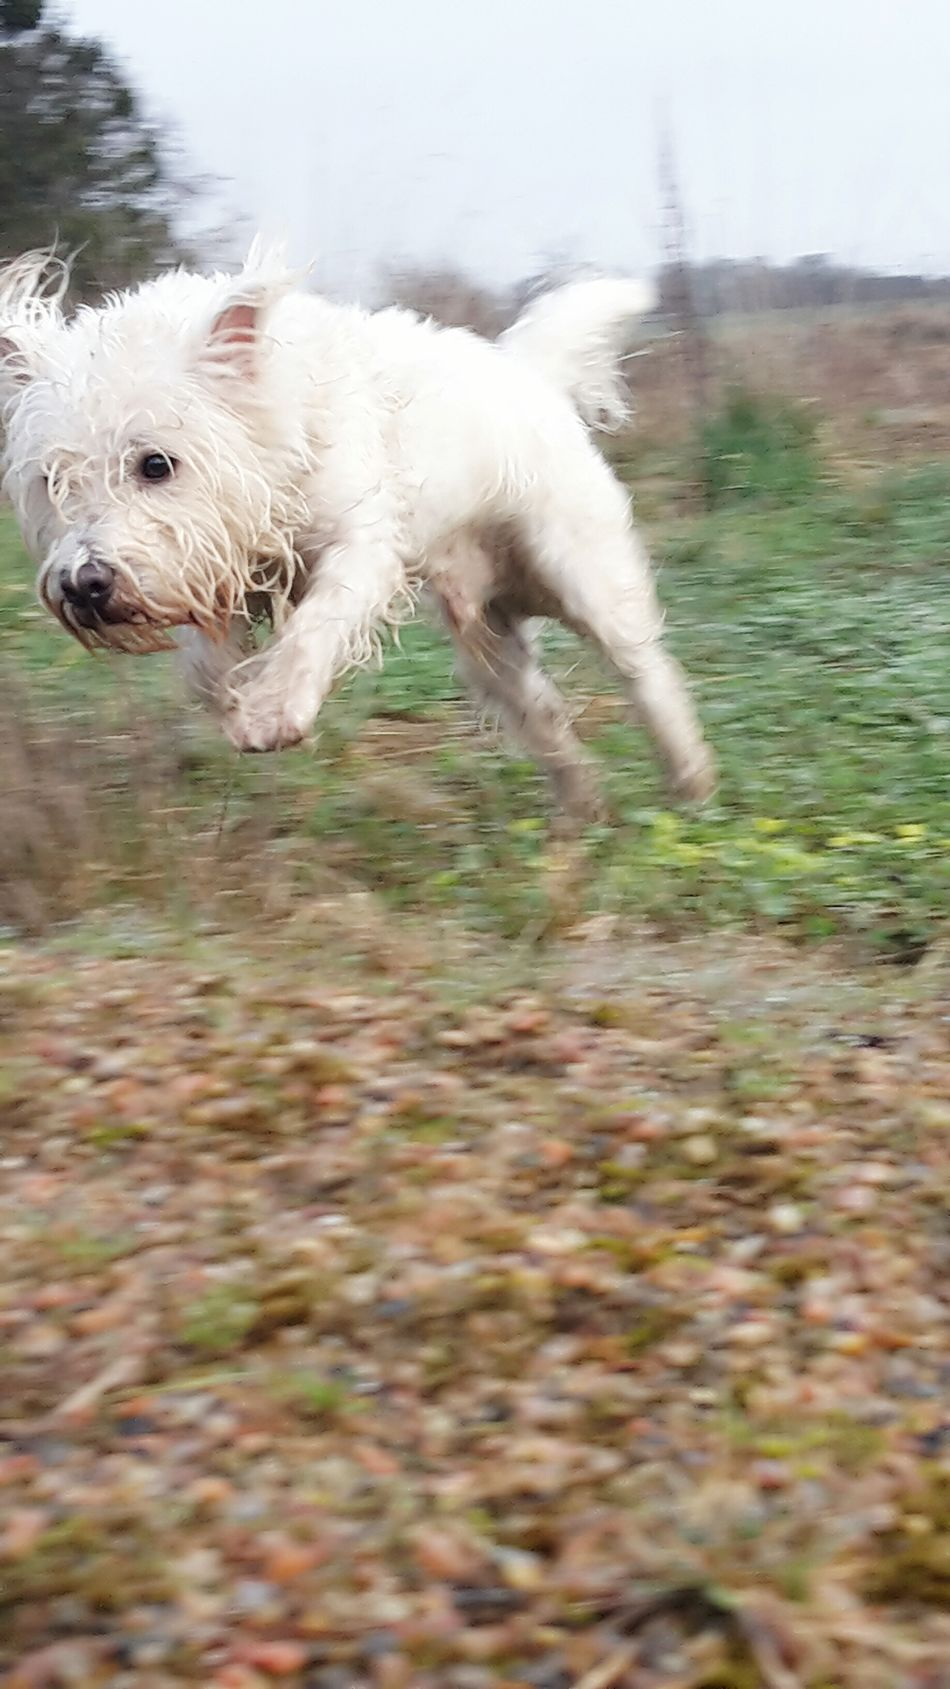 One Animal Domestic Animals Water Animal Themes Dog Pets No People Outdoors Day Close-up Nature Samsungphotography Hobby Photography Running Dog